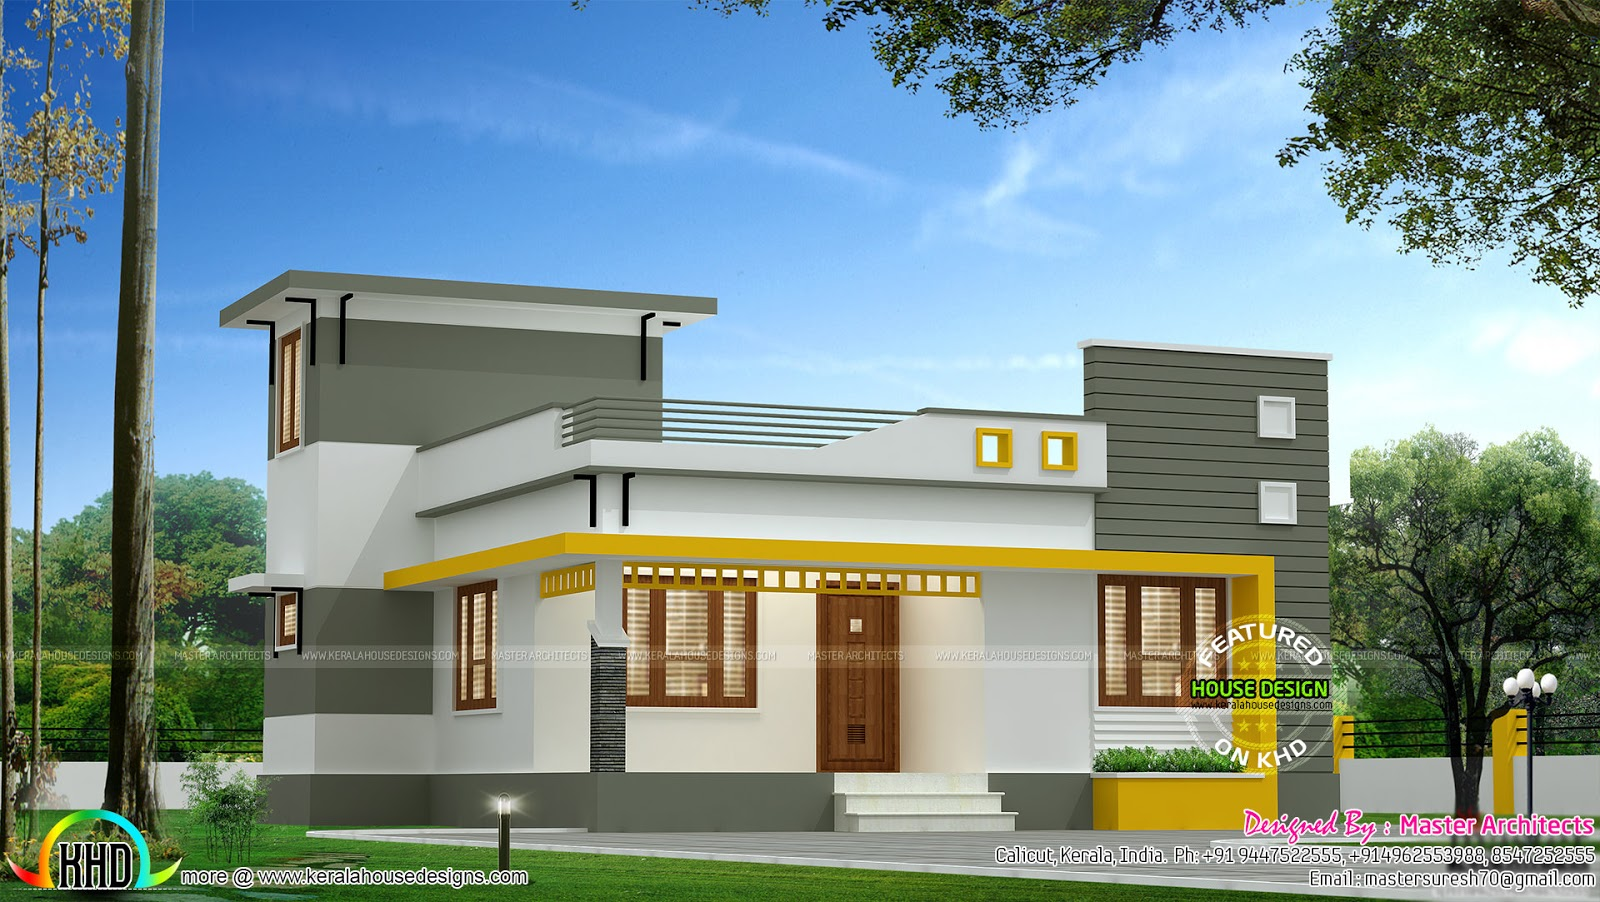 3 bedroom single floor modern architecture home kerala for Single floor house plans kerala style